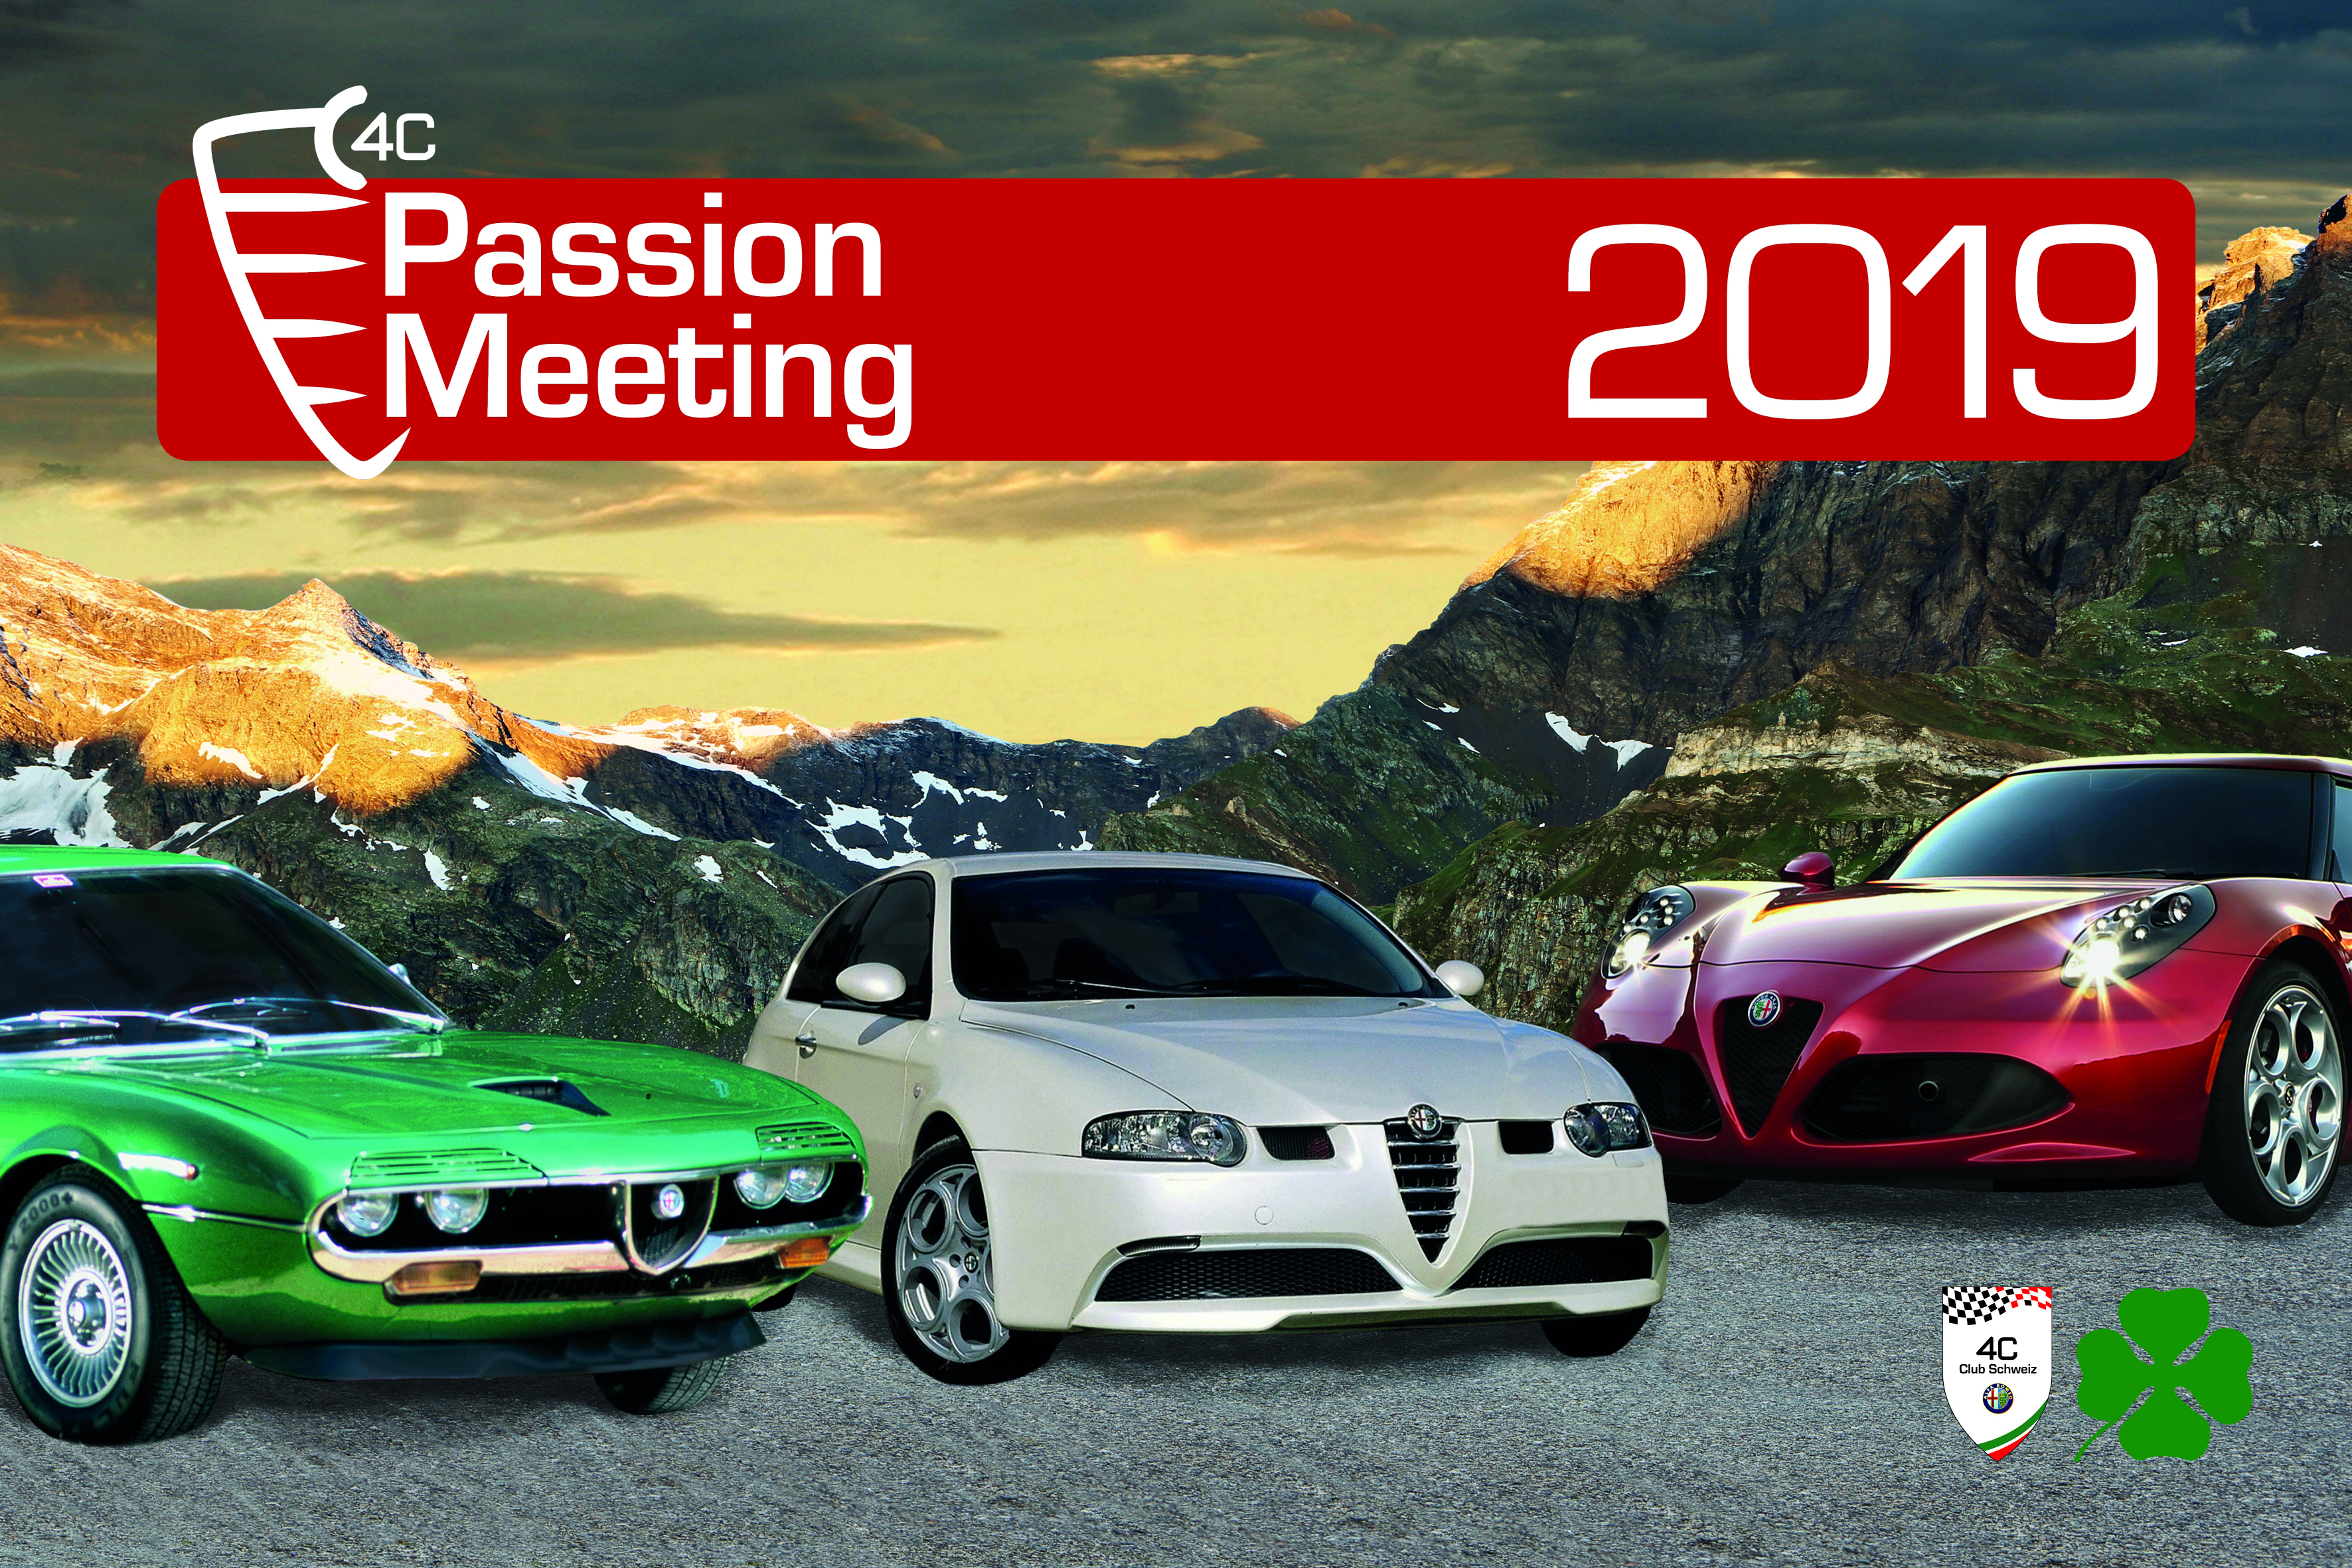 4C Passionmeeting 2019